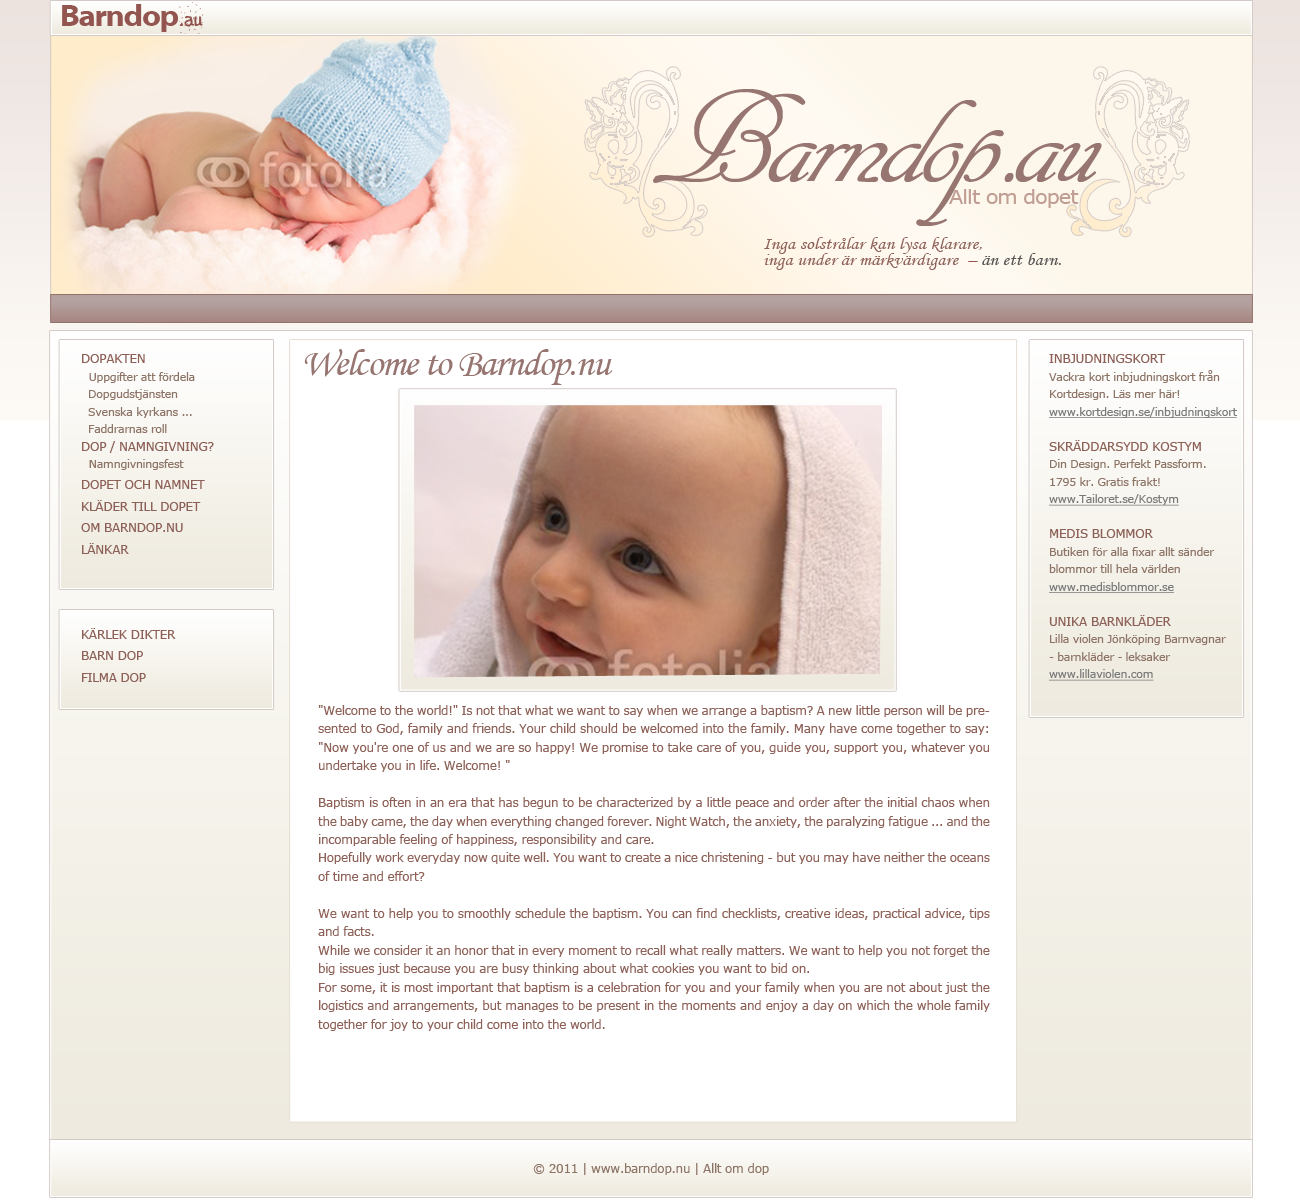 Need a new design for our website on child-christening